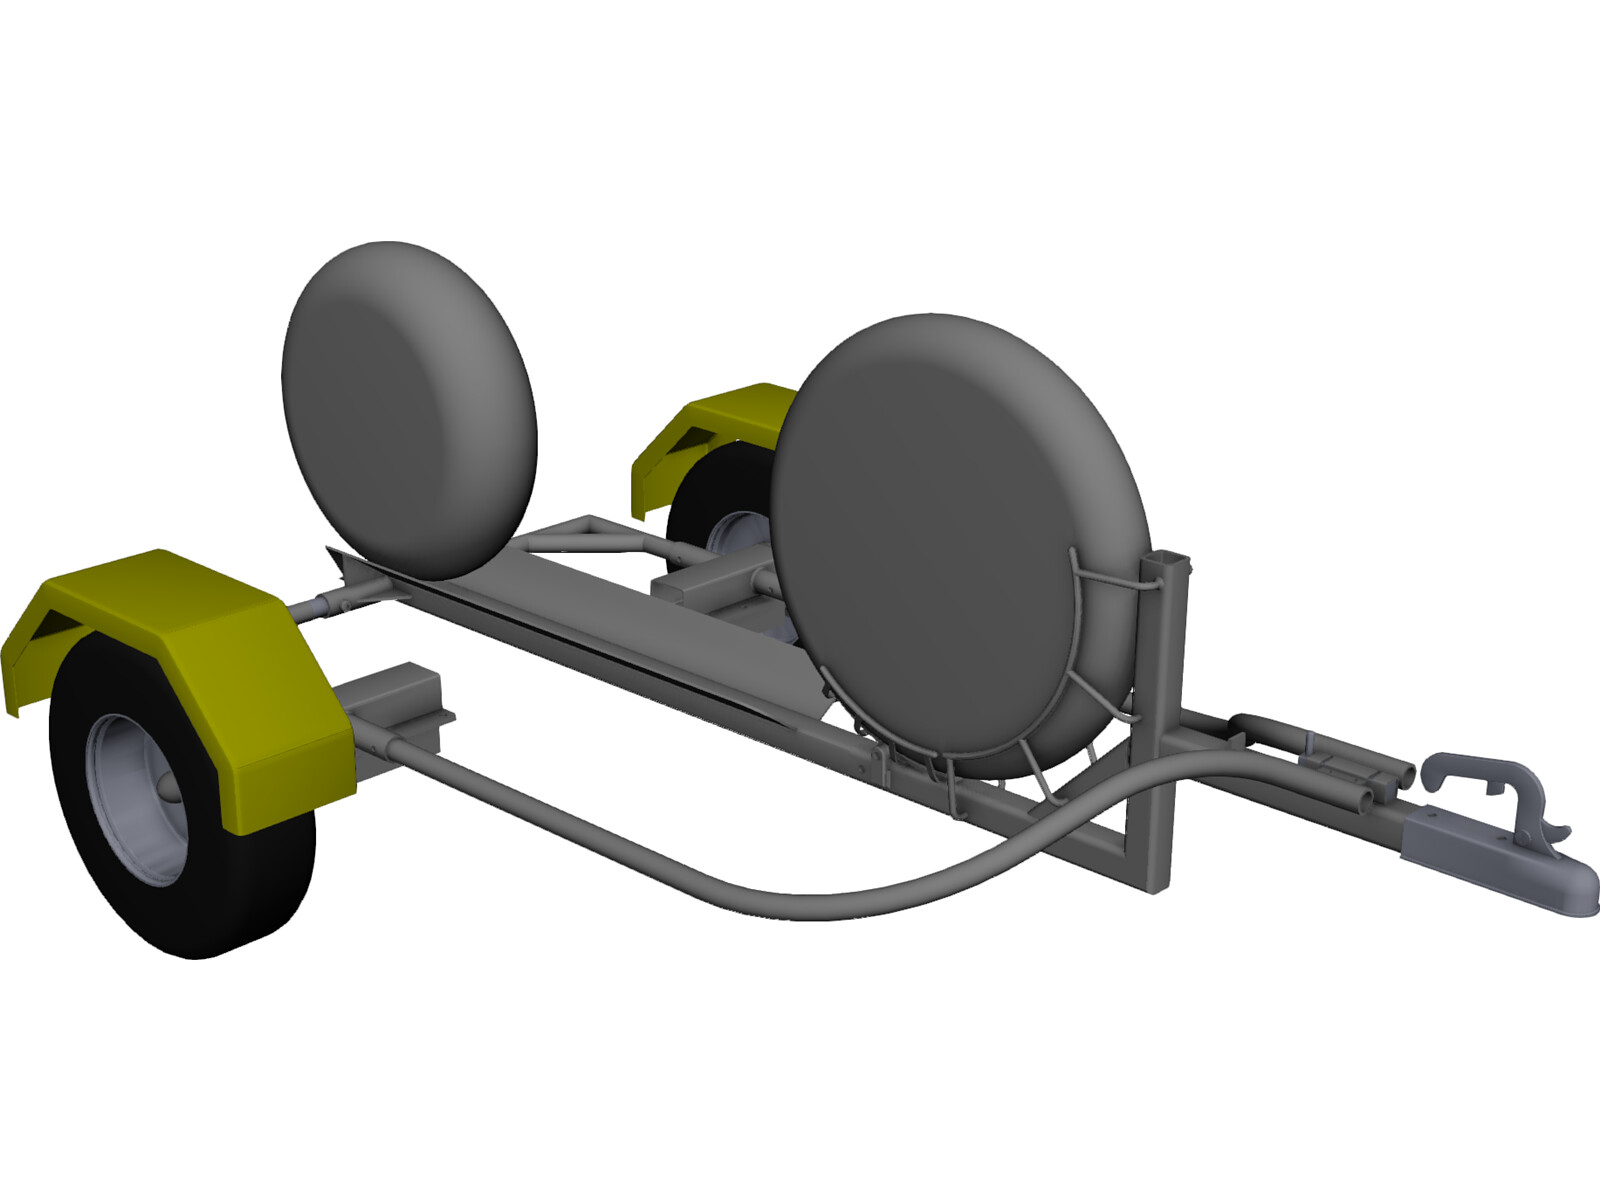 Collapsible Motorcycle Trailer 3D CAD Model